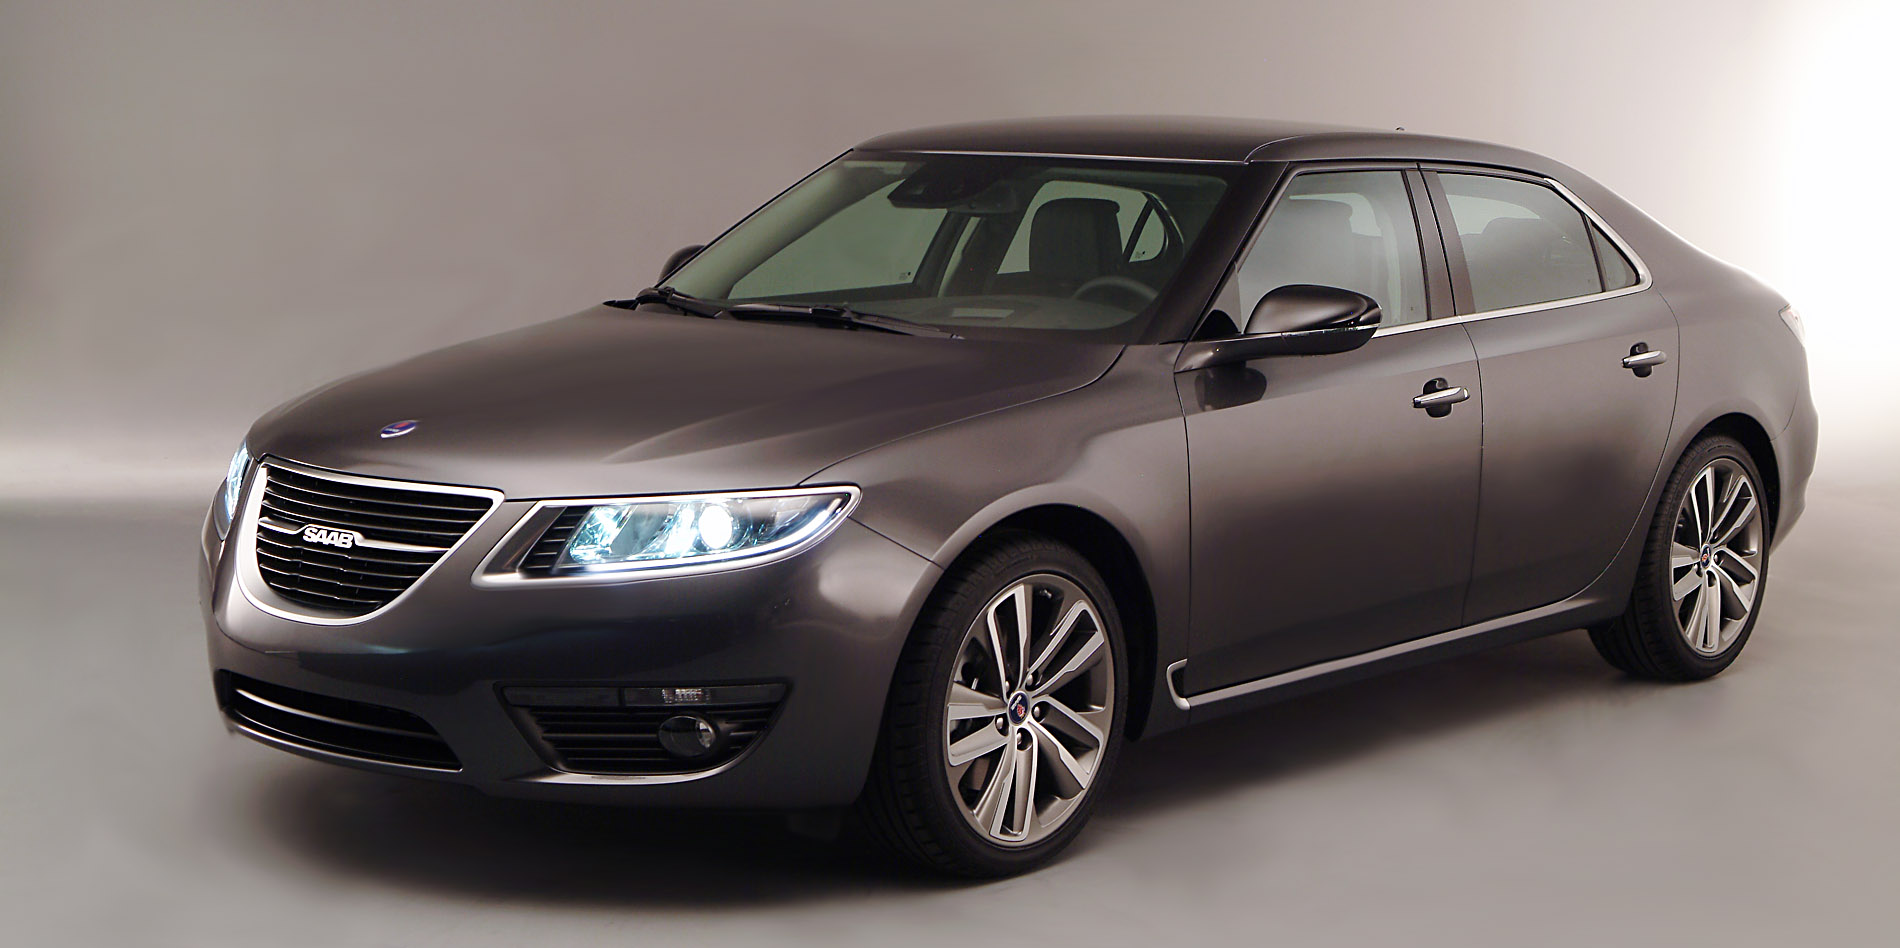 hight resolution of 2014 saab 9 5